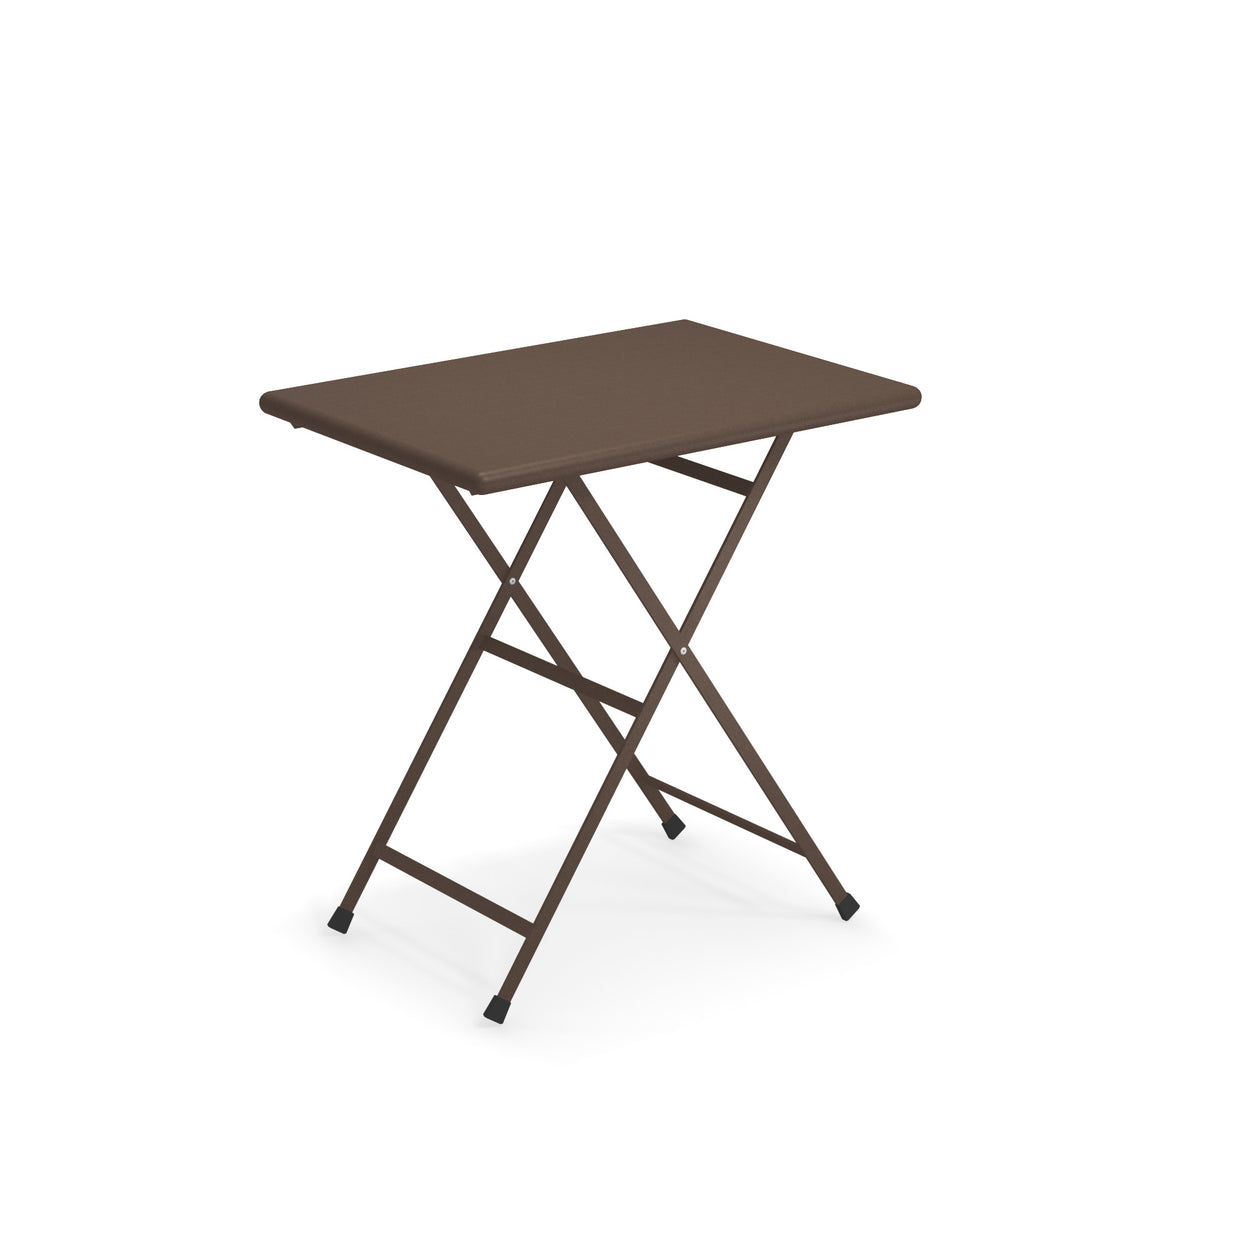 EMU Arc en Ciel Rectangular Folding Outdoor Table